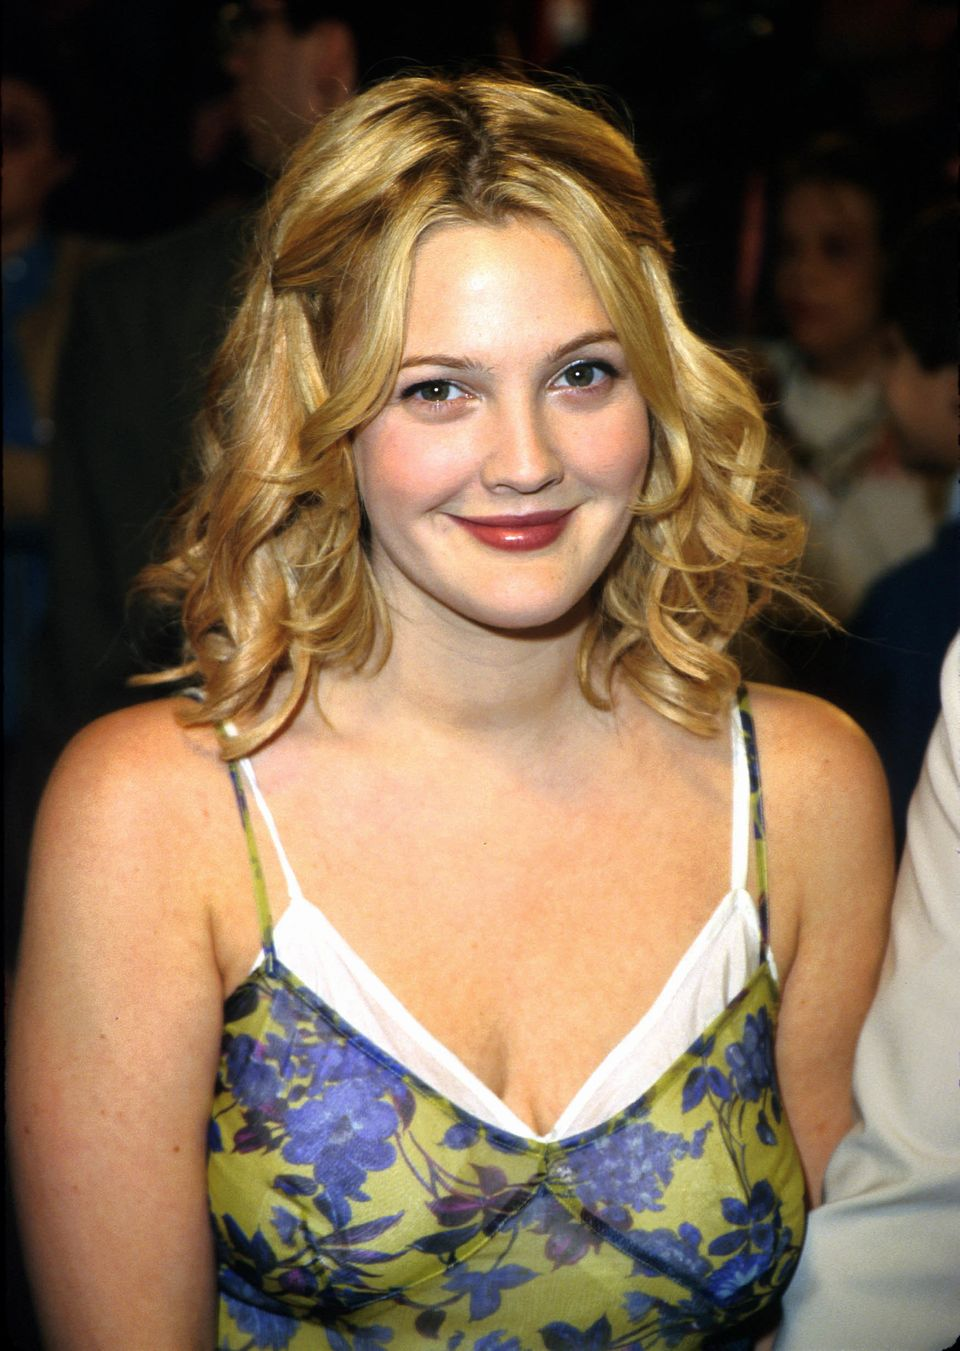 373633 01: 3/1999 Los Angeles, Ca Drew Barrymore 21590.  (Photo By Mike Grey/Getty Images)